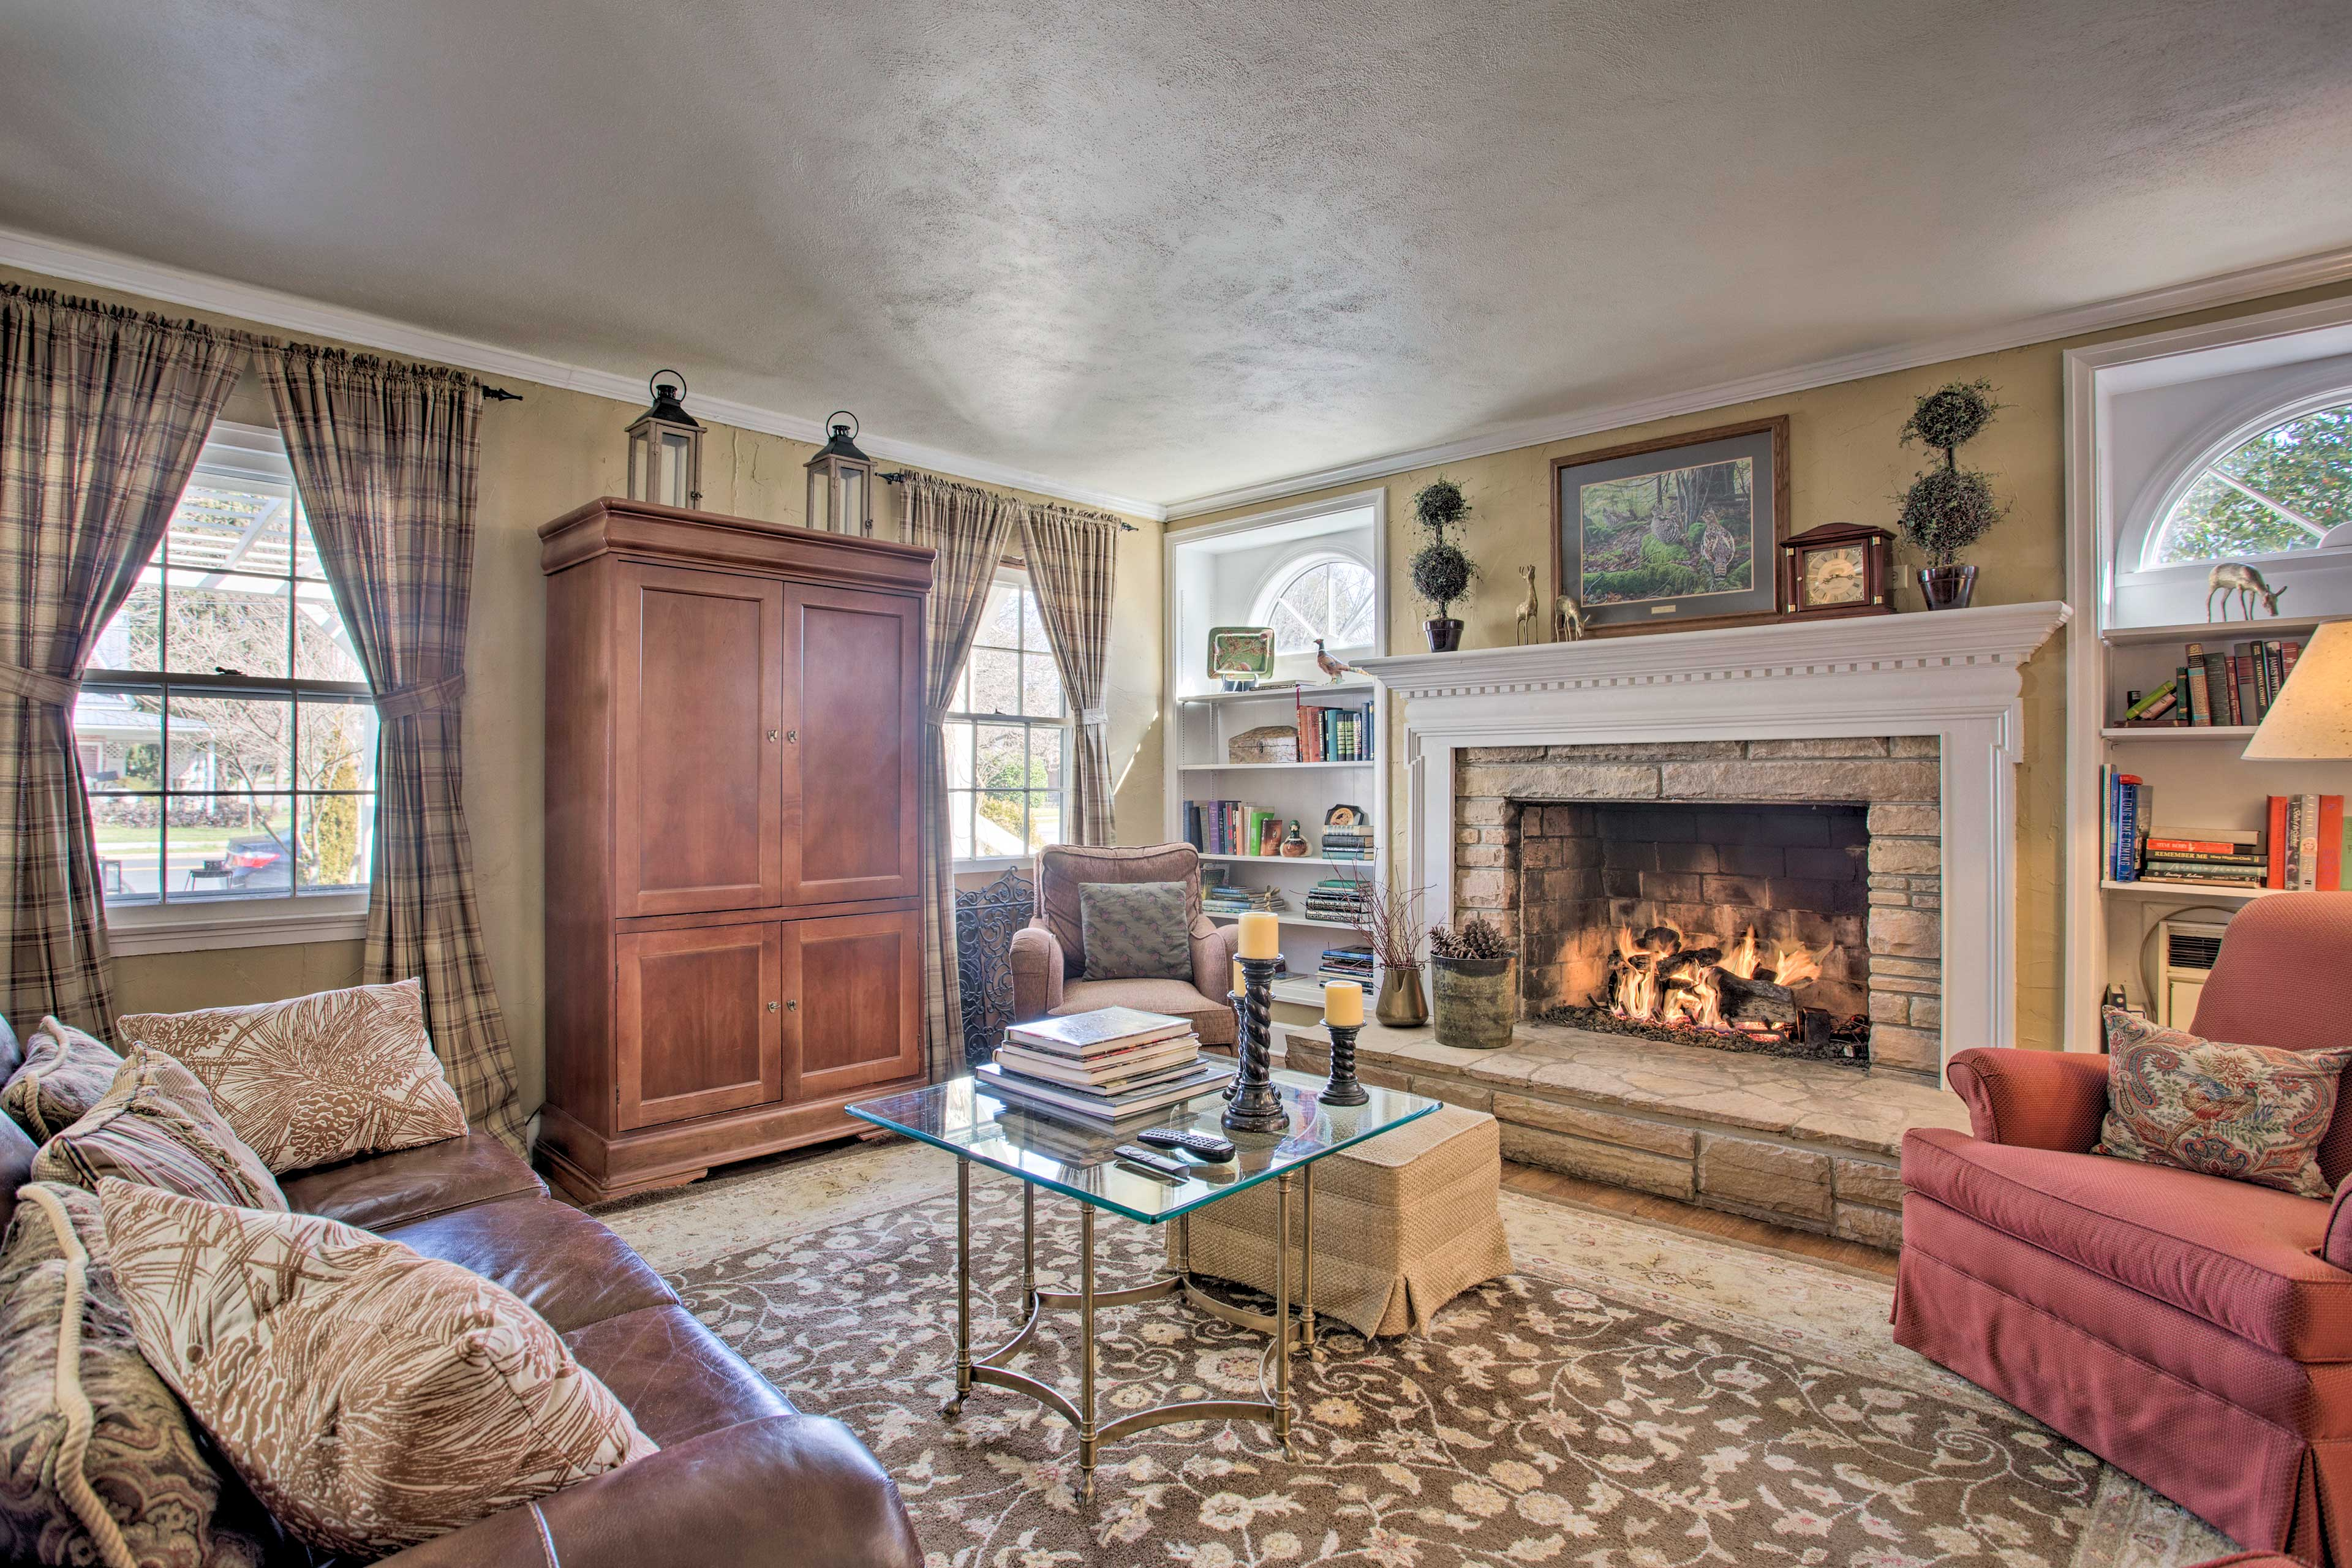 Cozy up by the fireplace on cold nights!